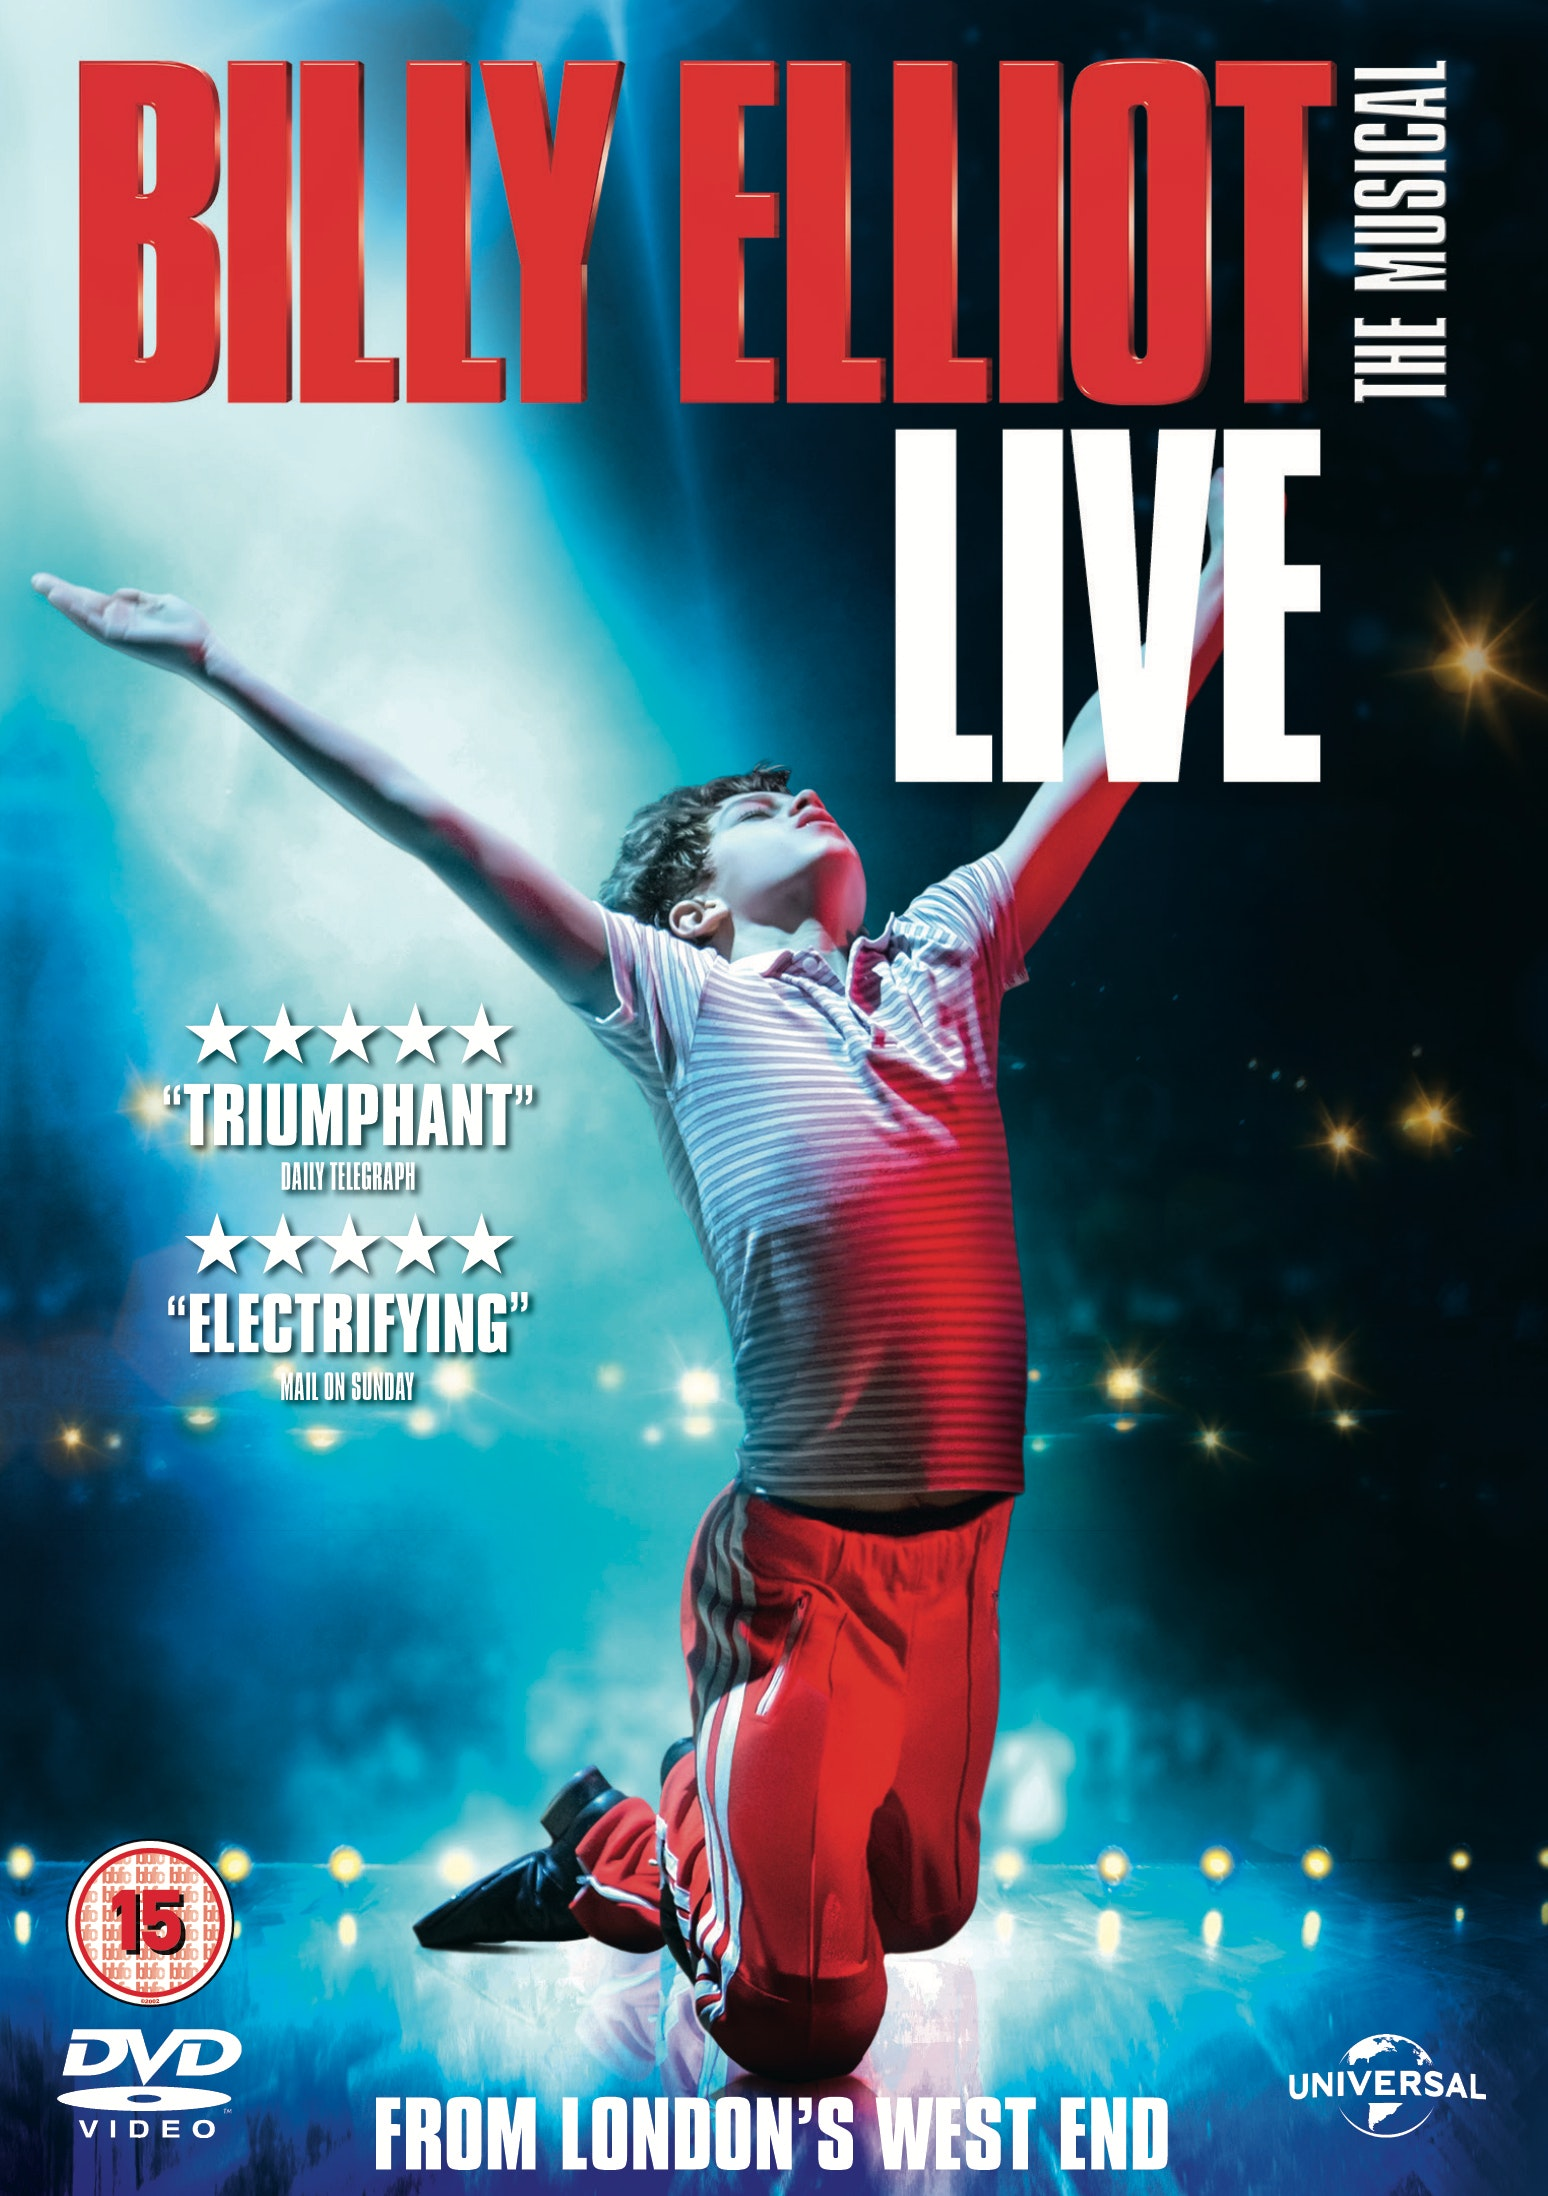 Billyelliot uk dvd 2d